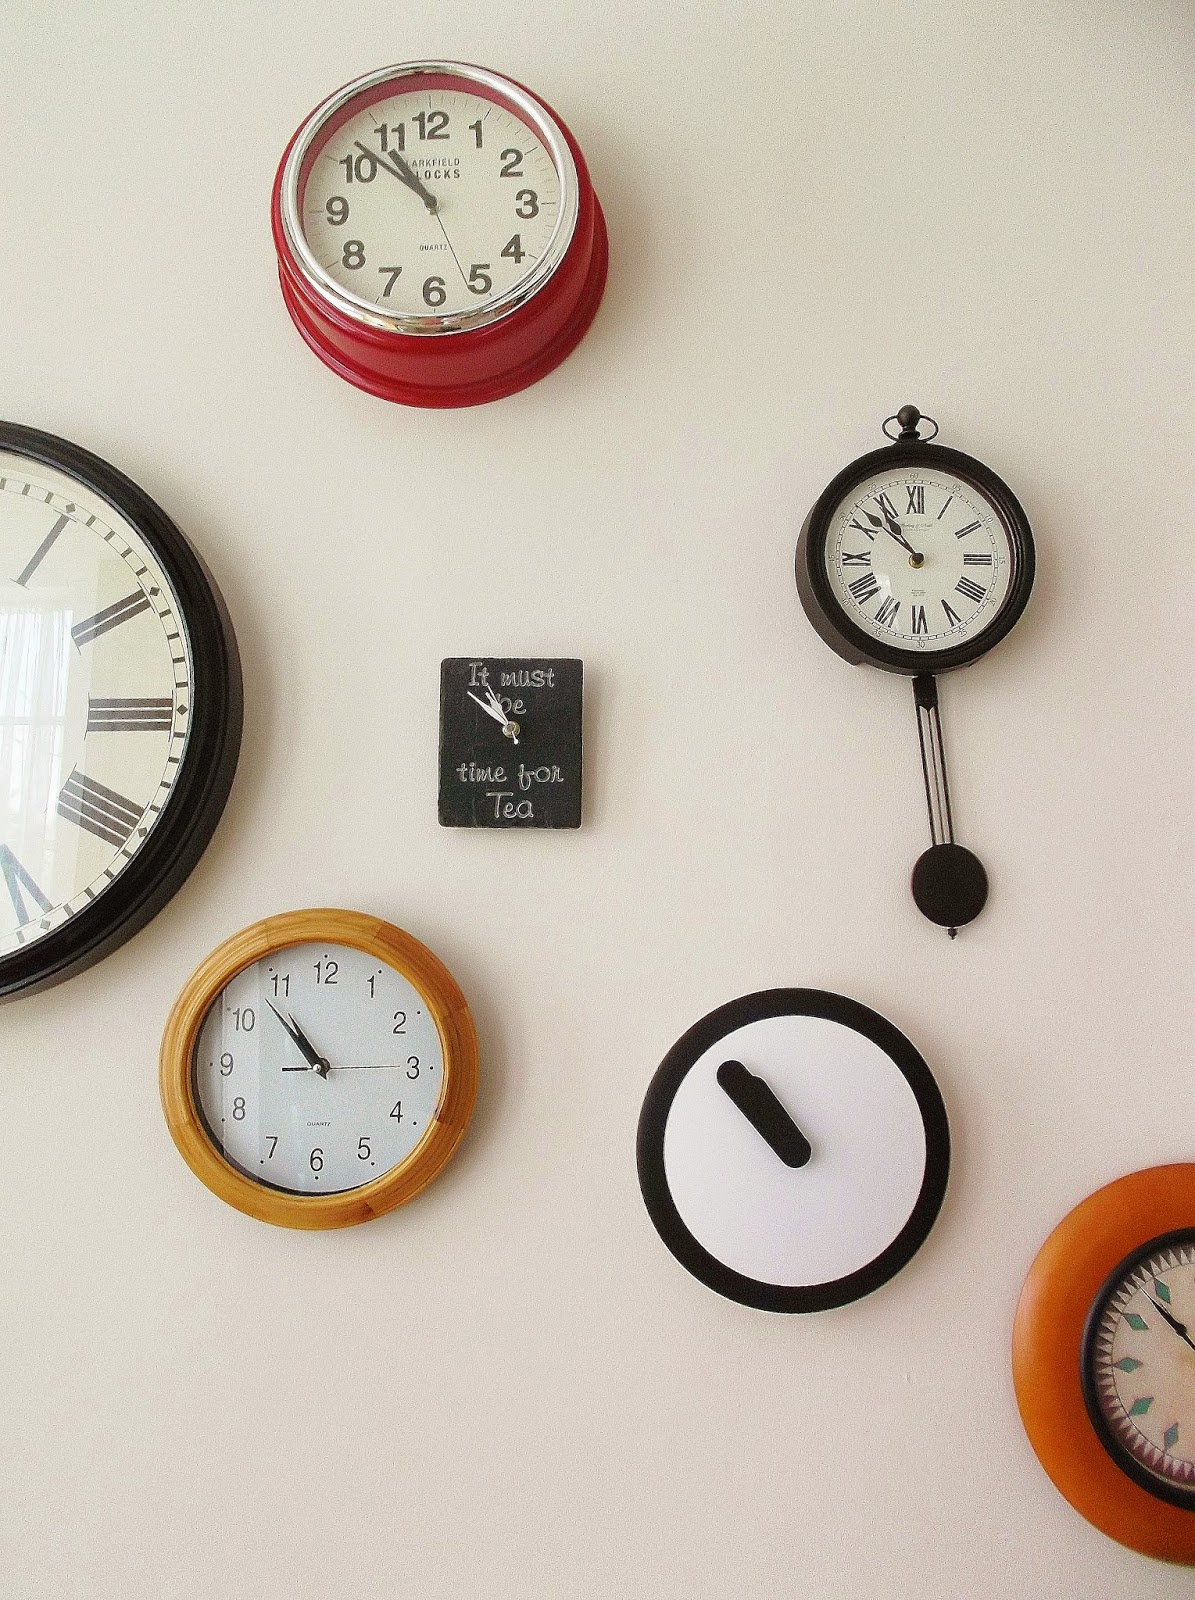 Interiors clock wall call me amy our clock wall is a constant work in progress and were always looking to add to it so this is by no means the end result amipublicfo Image collections